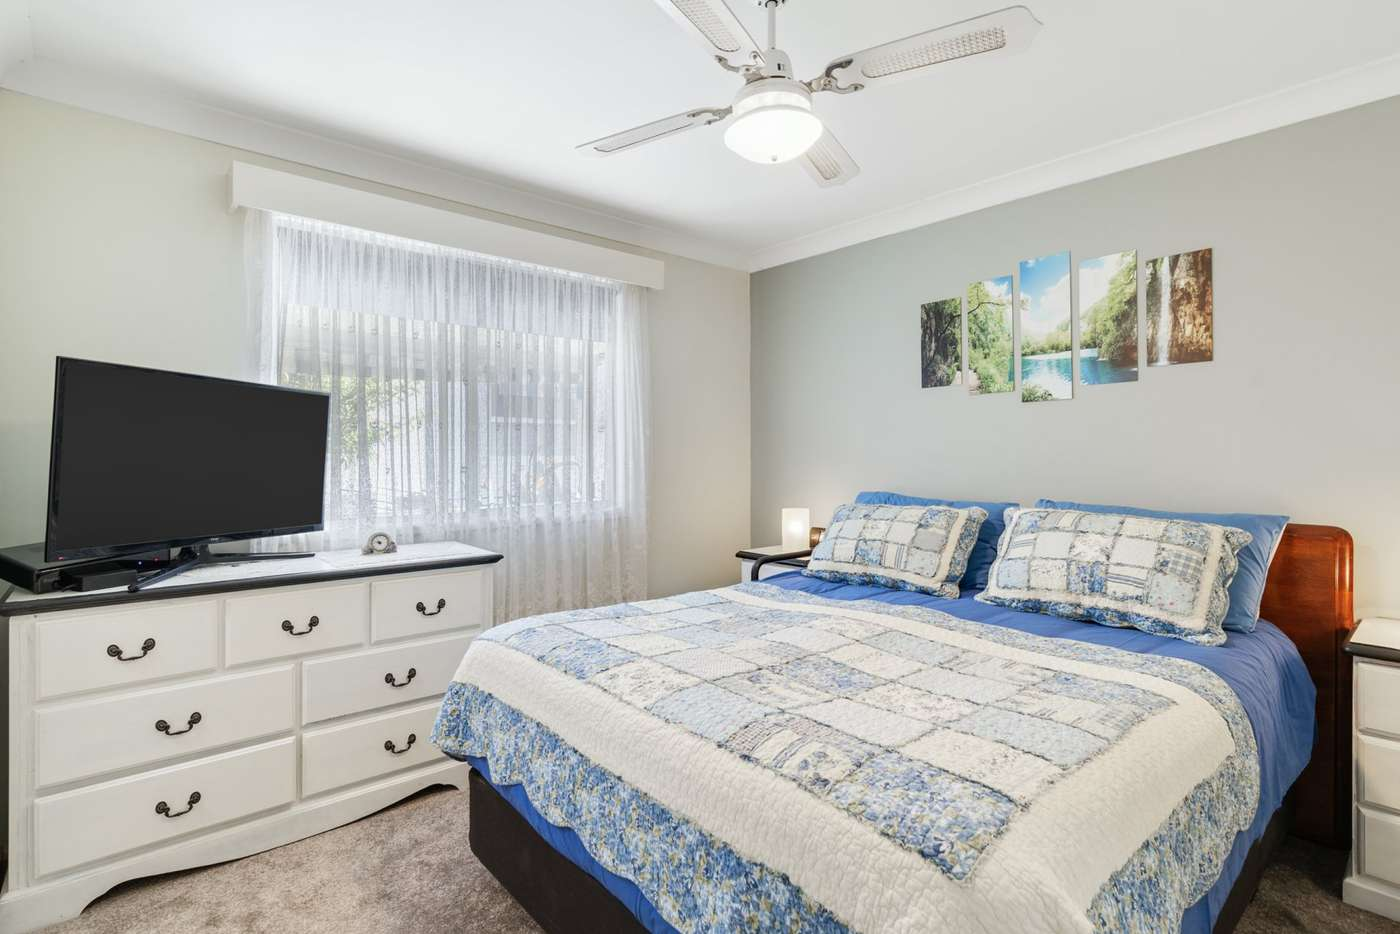 Seventh view of Homely house listing, 237/25 Mulloway Road, Chain Valley Bay NSW 2259